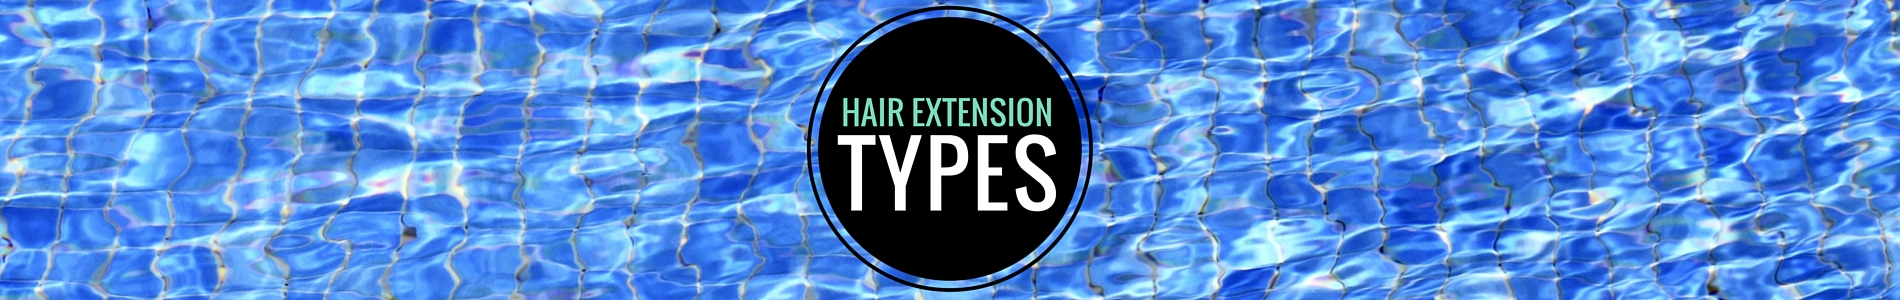 hair extension types banner